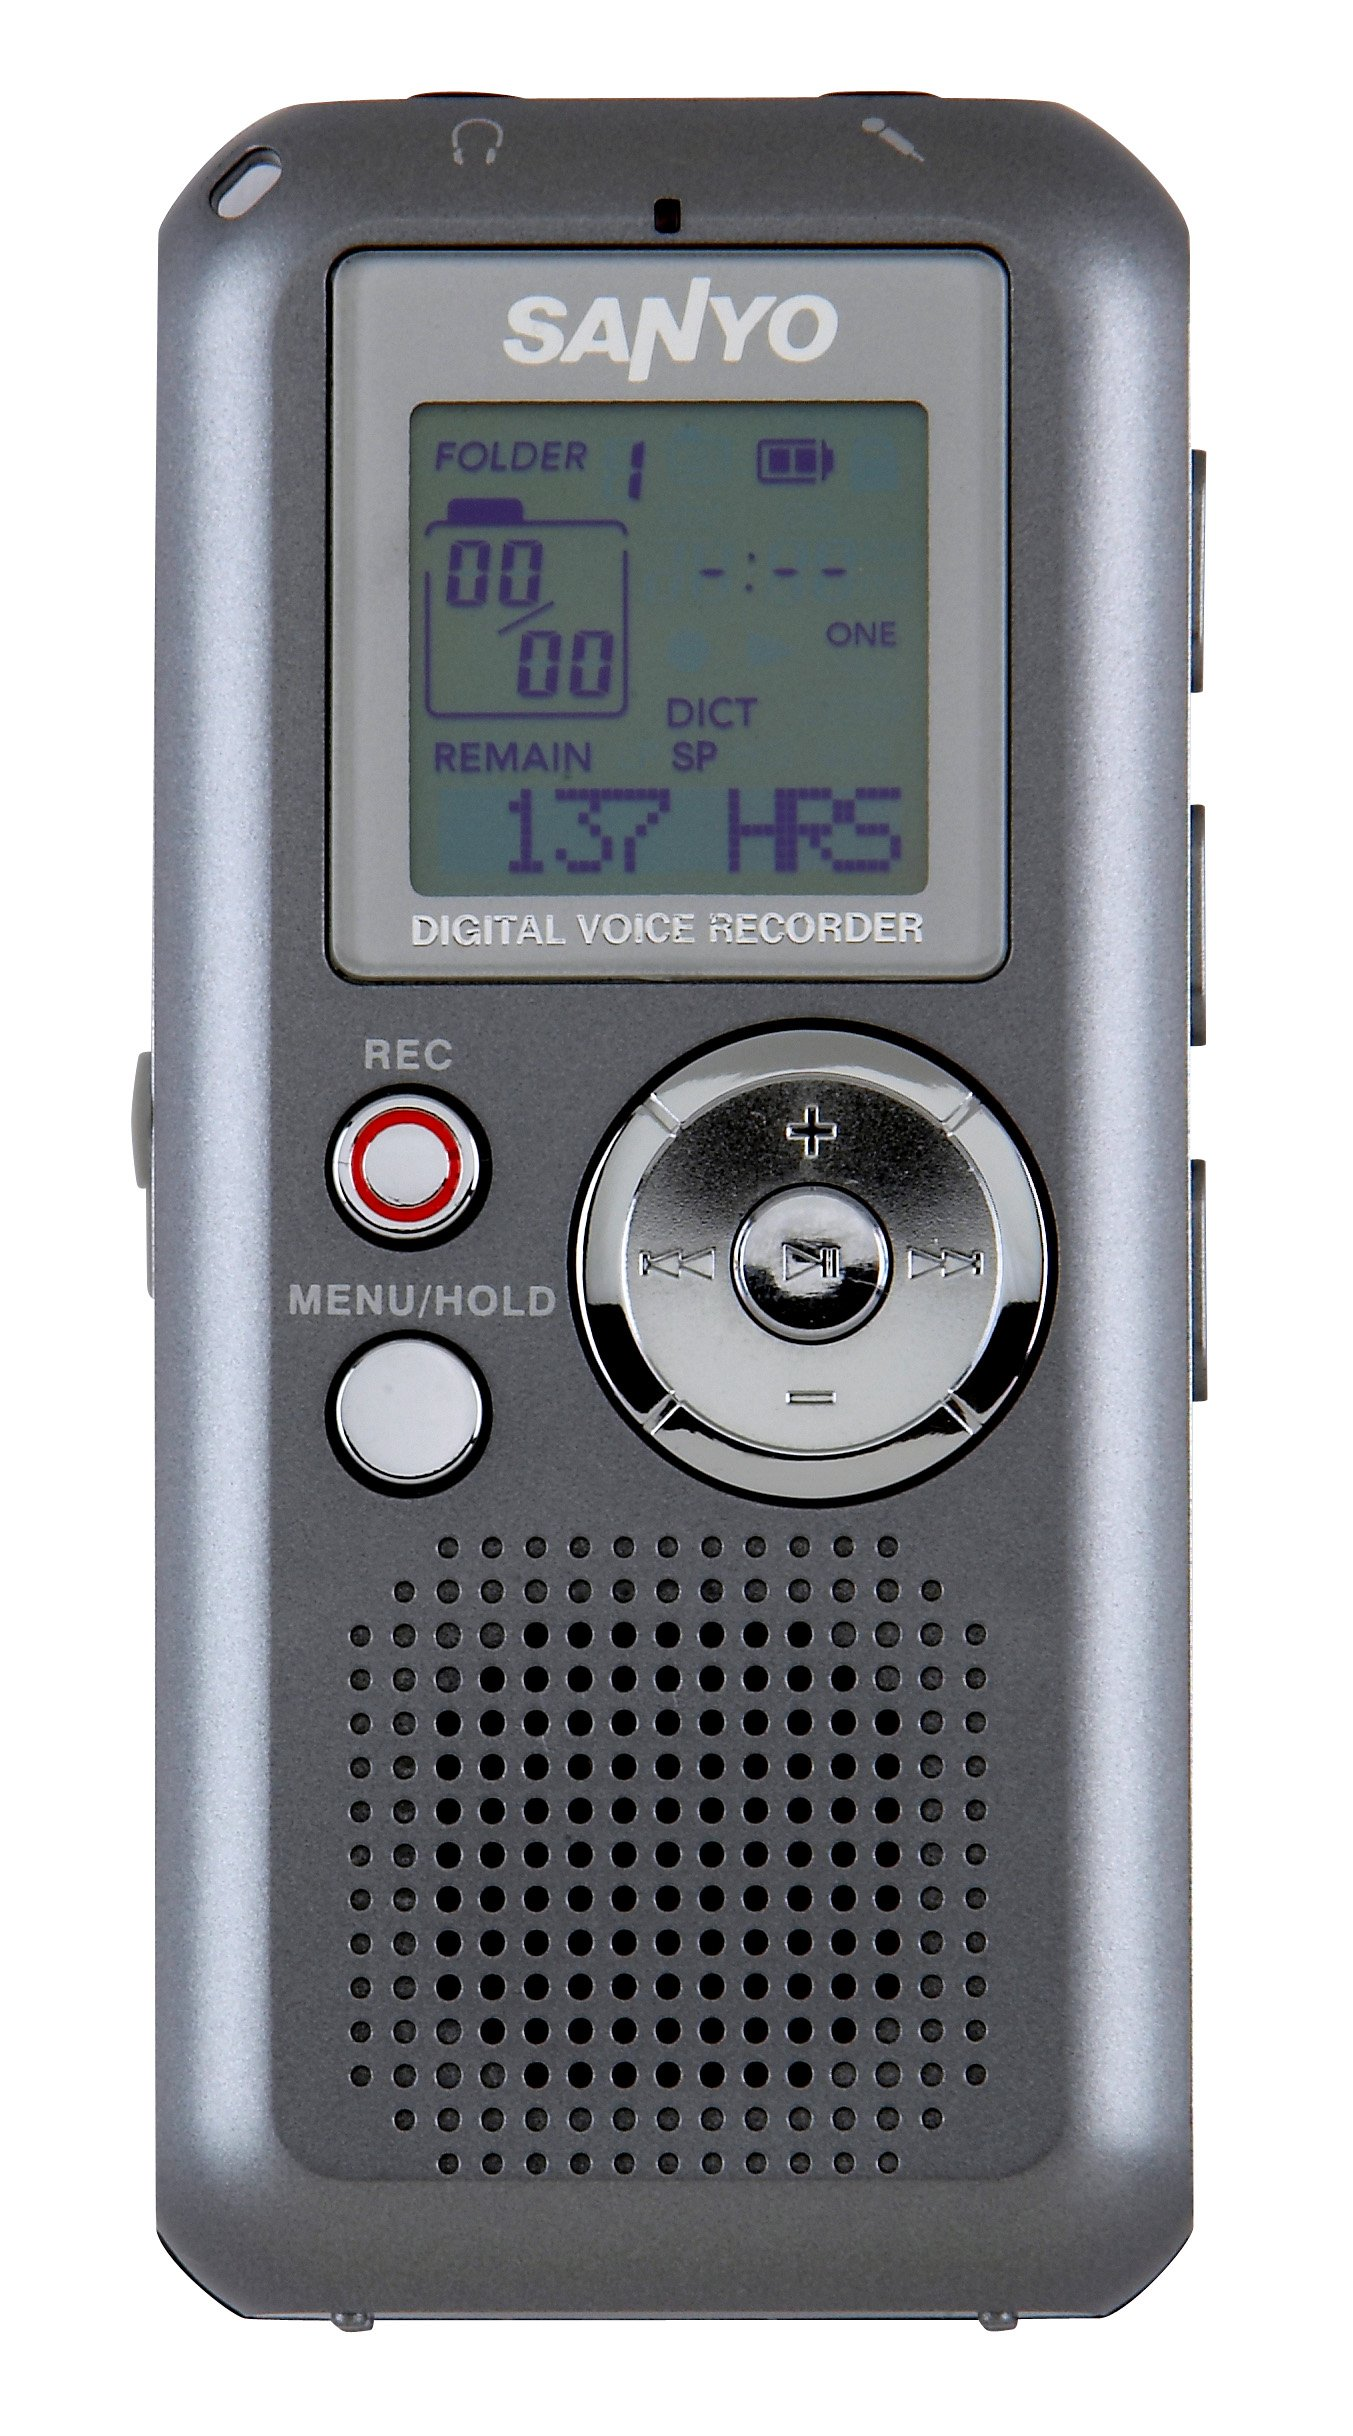 SANYO ICR-FP550E Digital MP3 Voice Recorder with eneloop batteries and USB battery charger